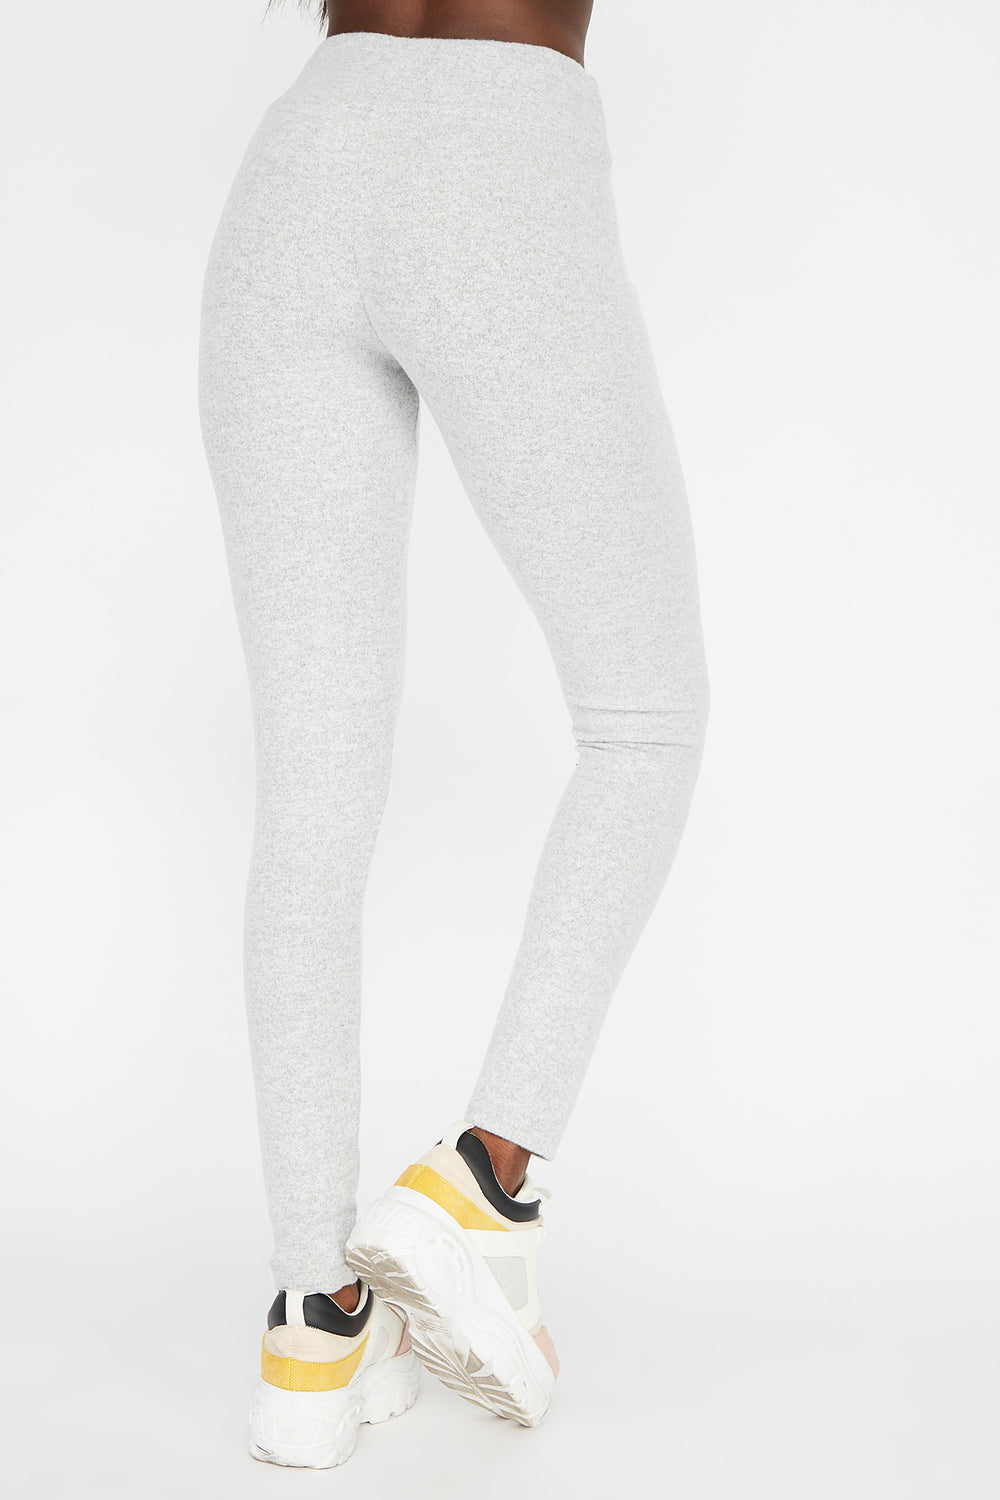 Leggings Cepillados de Cintura Autoajustable Gris